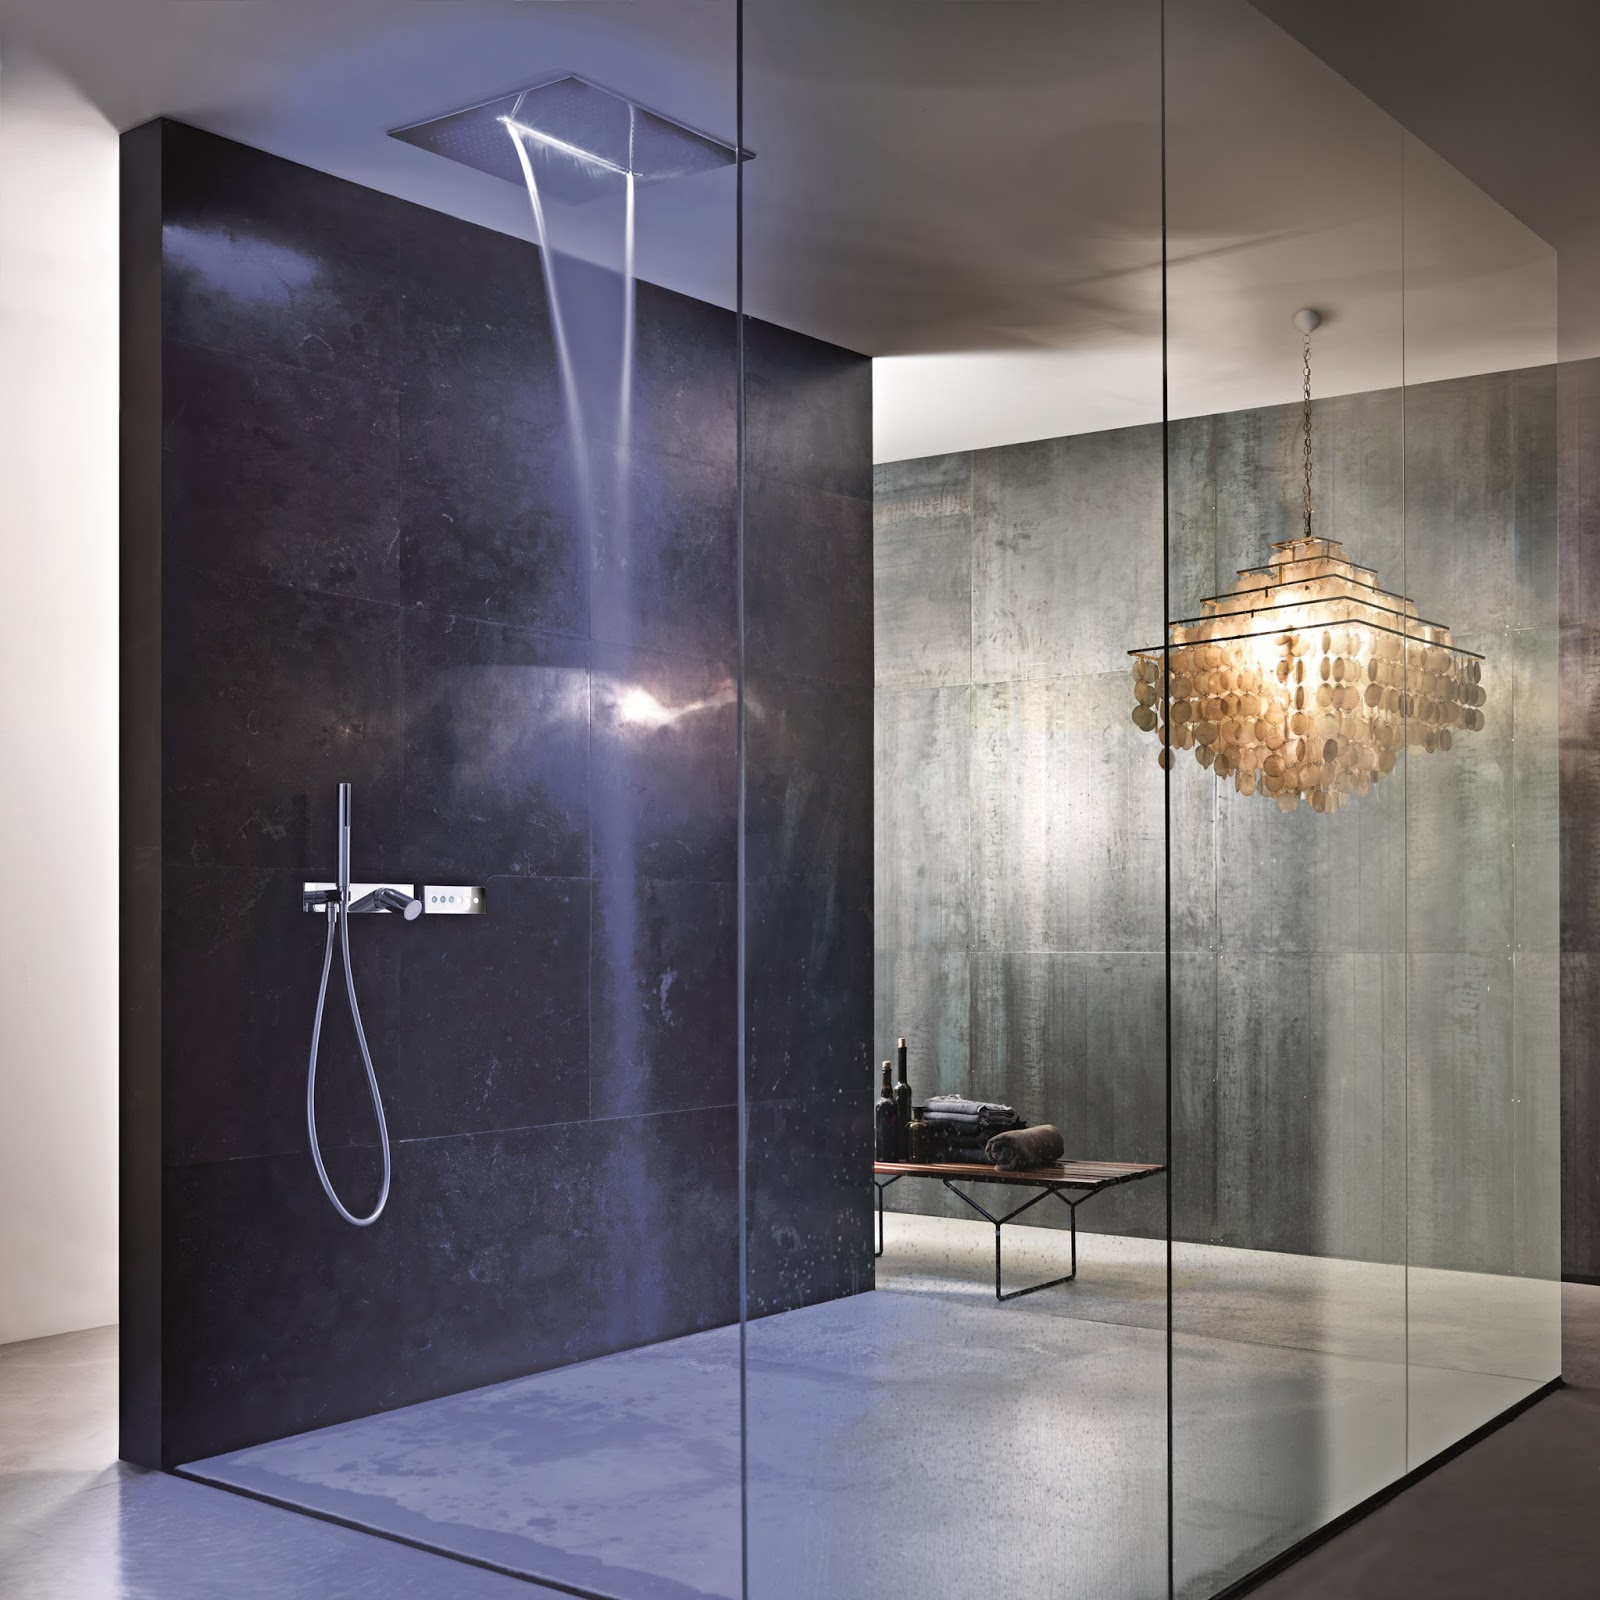 awesome bathrooms and awesome showers most beautiful houses in the world. Black Bedroom Furniture Sets. Home Design Ideas